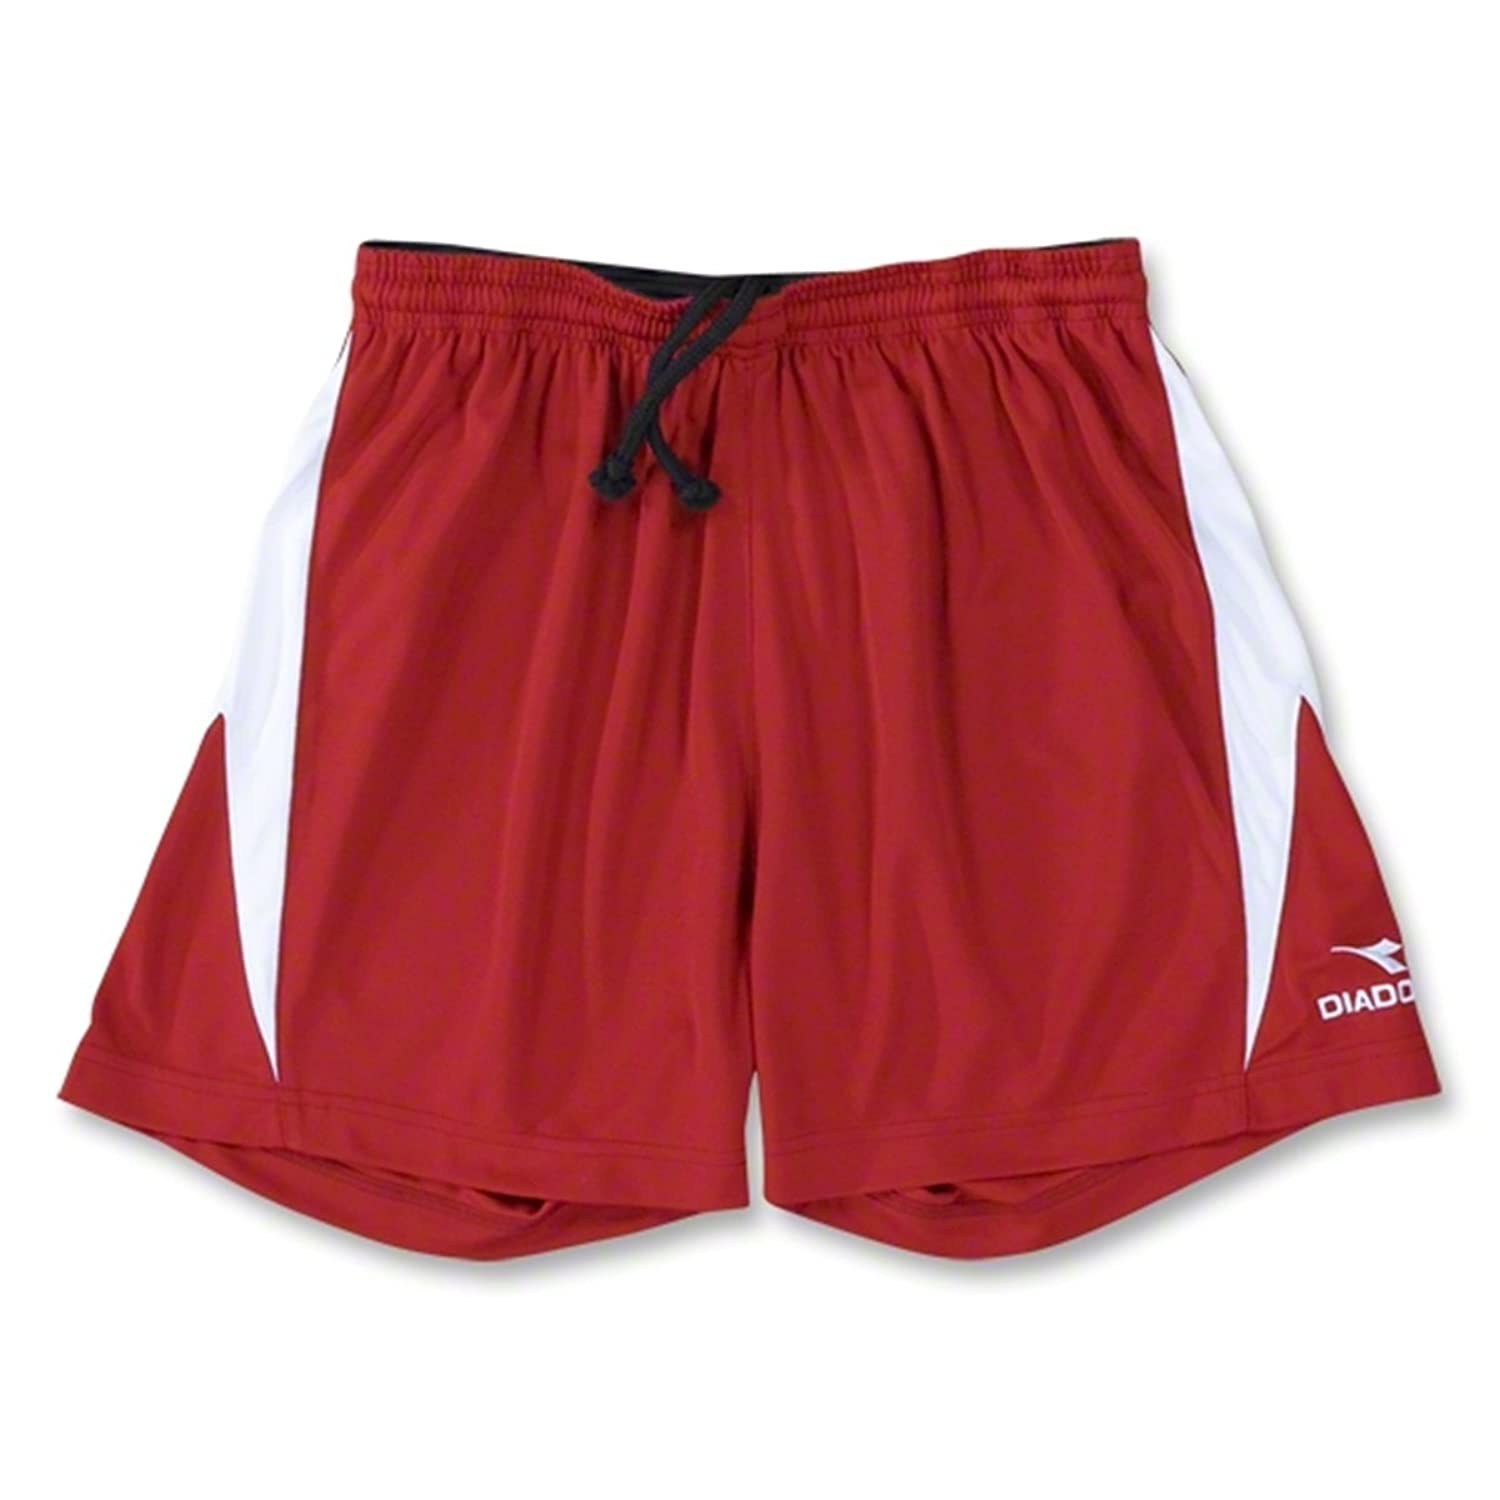 Diadora Rigore Shorts, Red, X-Large